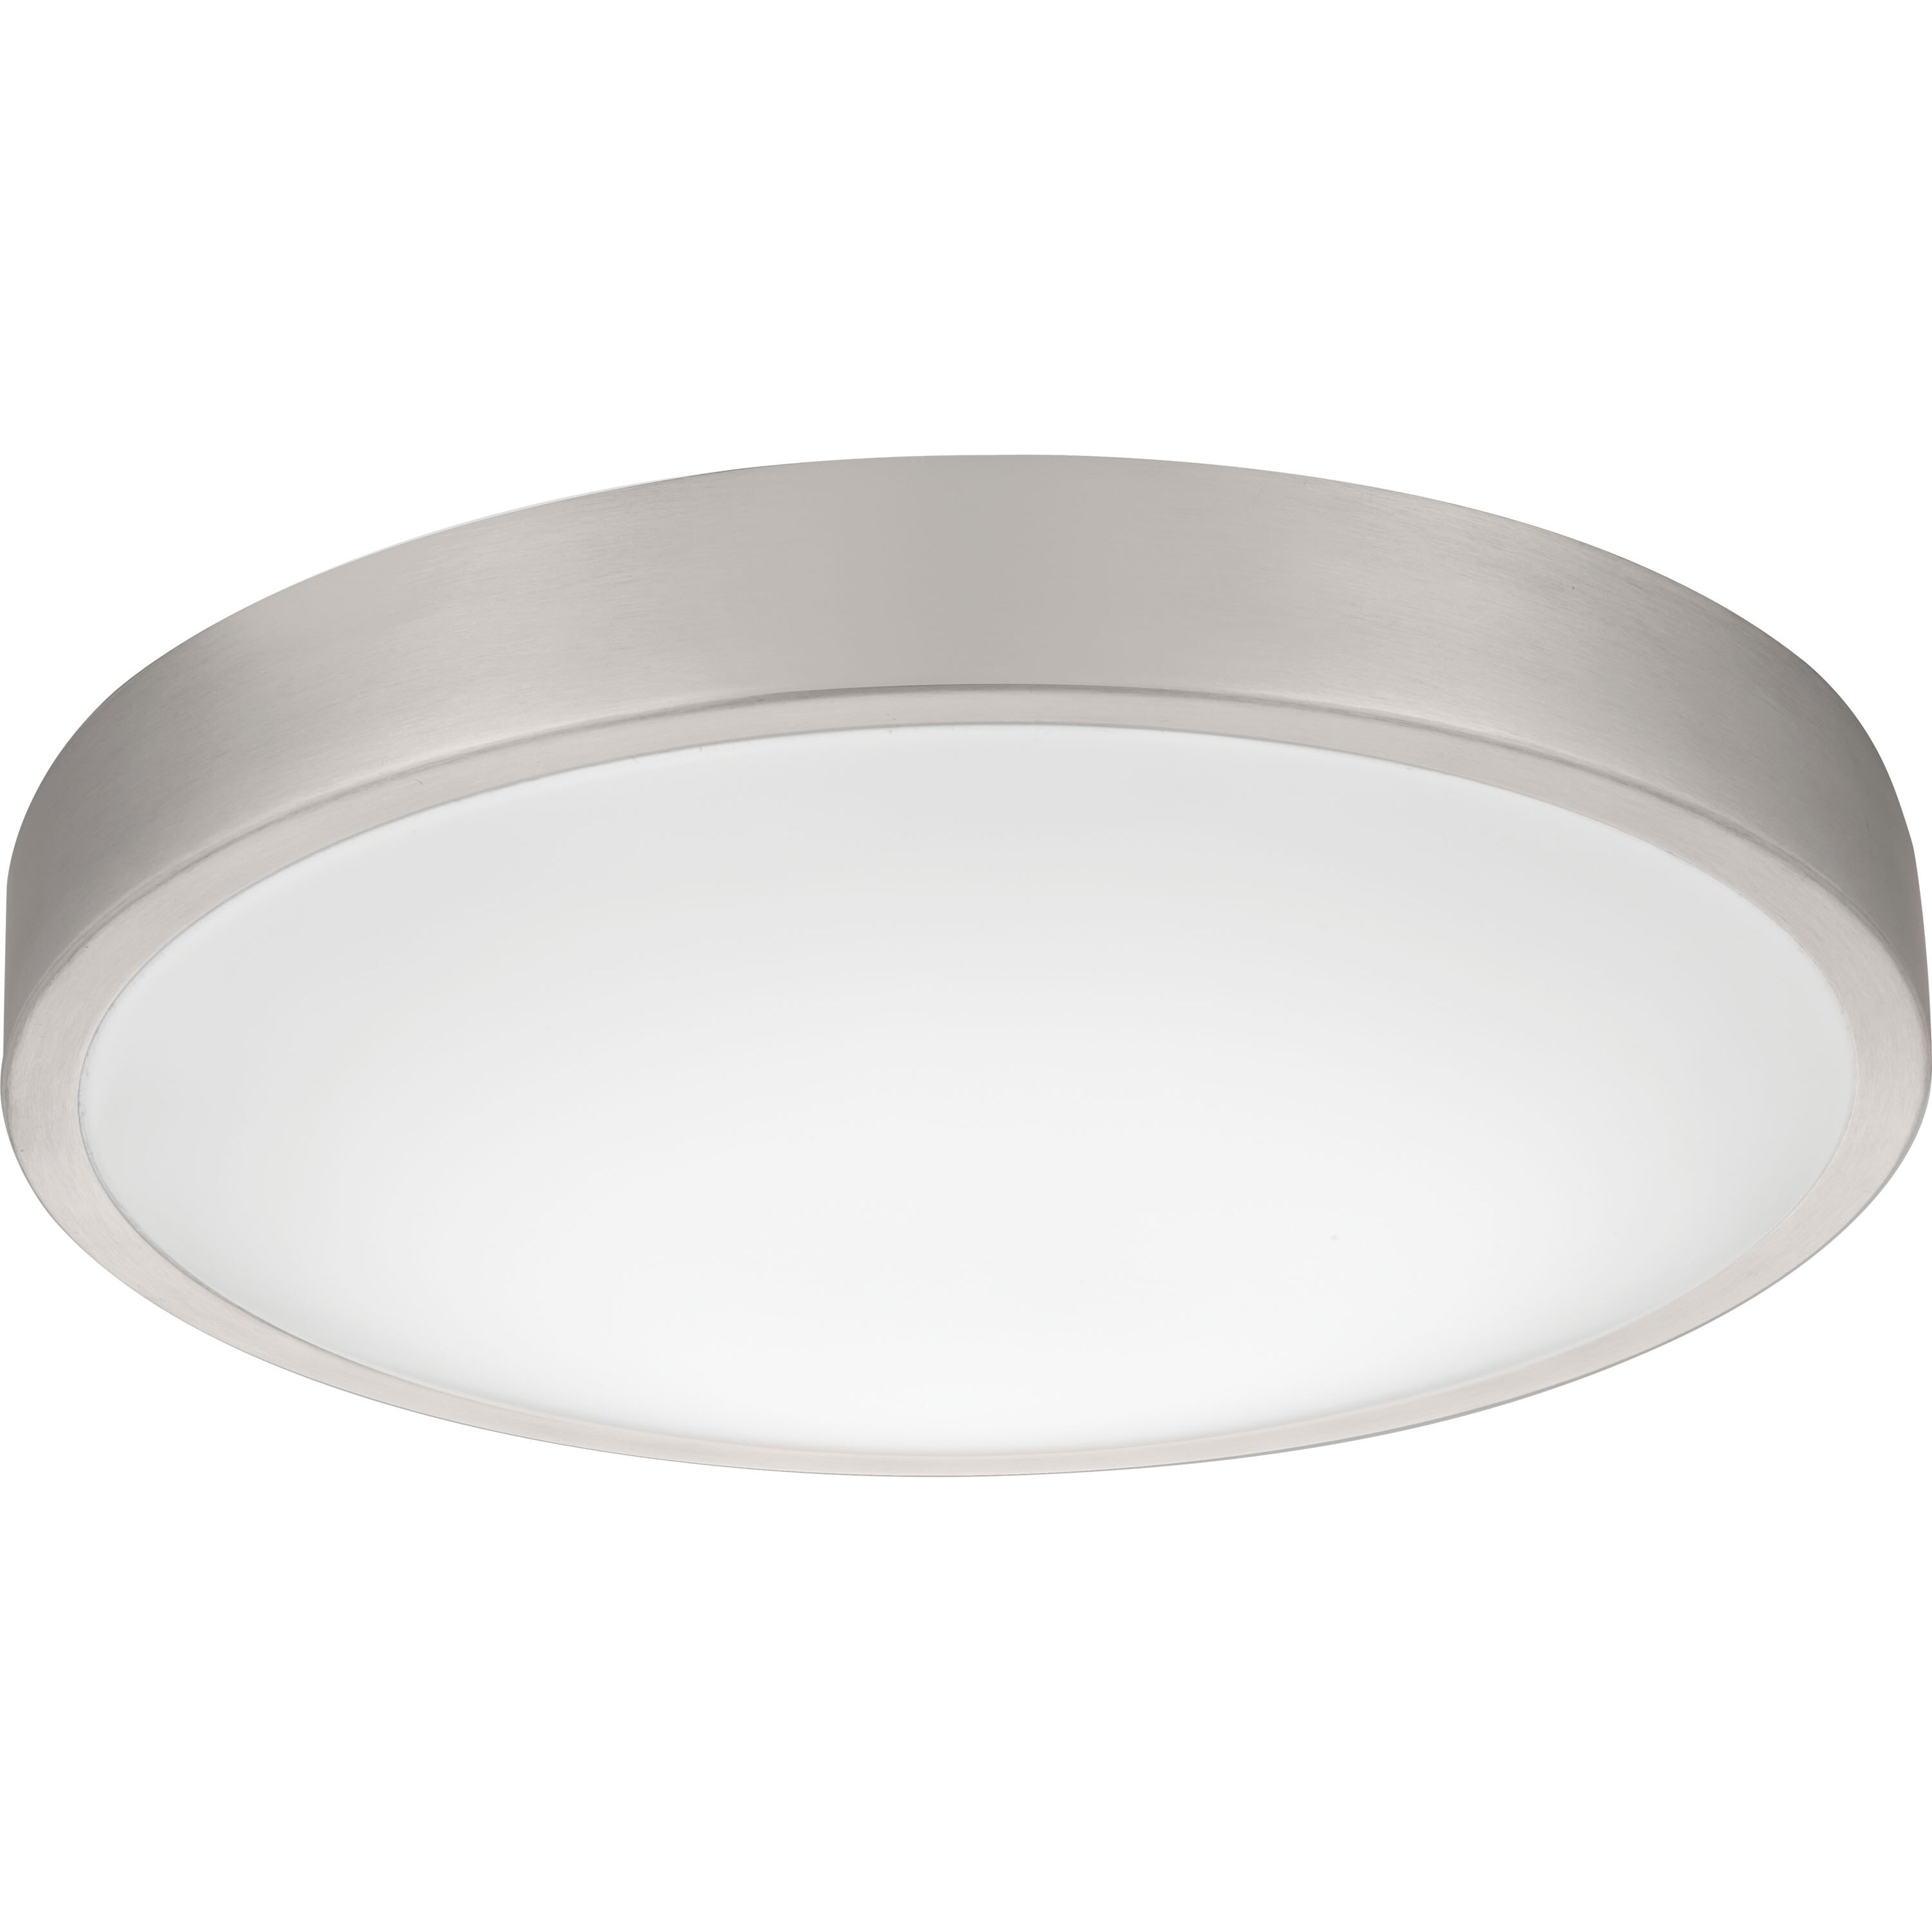 Lithonia Under Cabinet Lighting Lithonia Lighting Lacuna Flush Mount Reviews Wayfair Supply